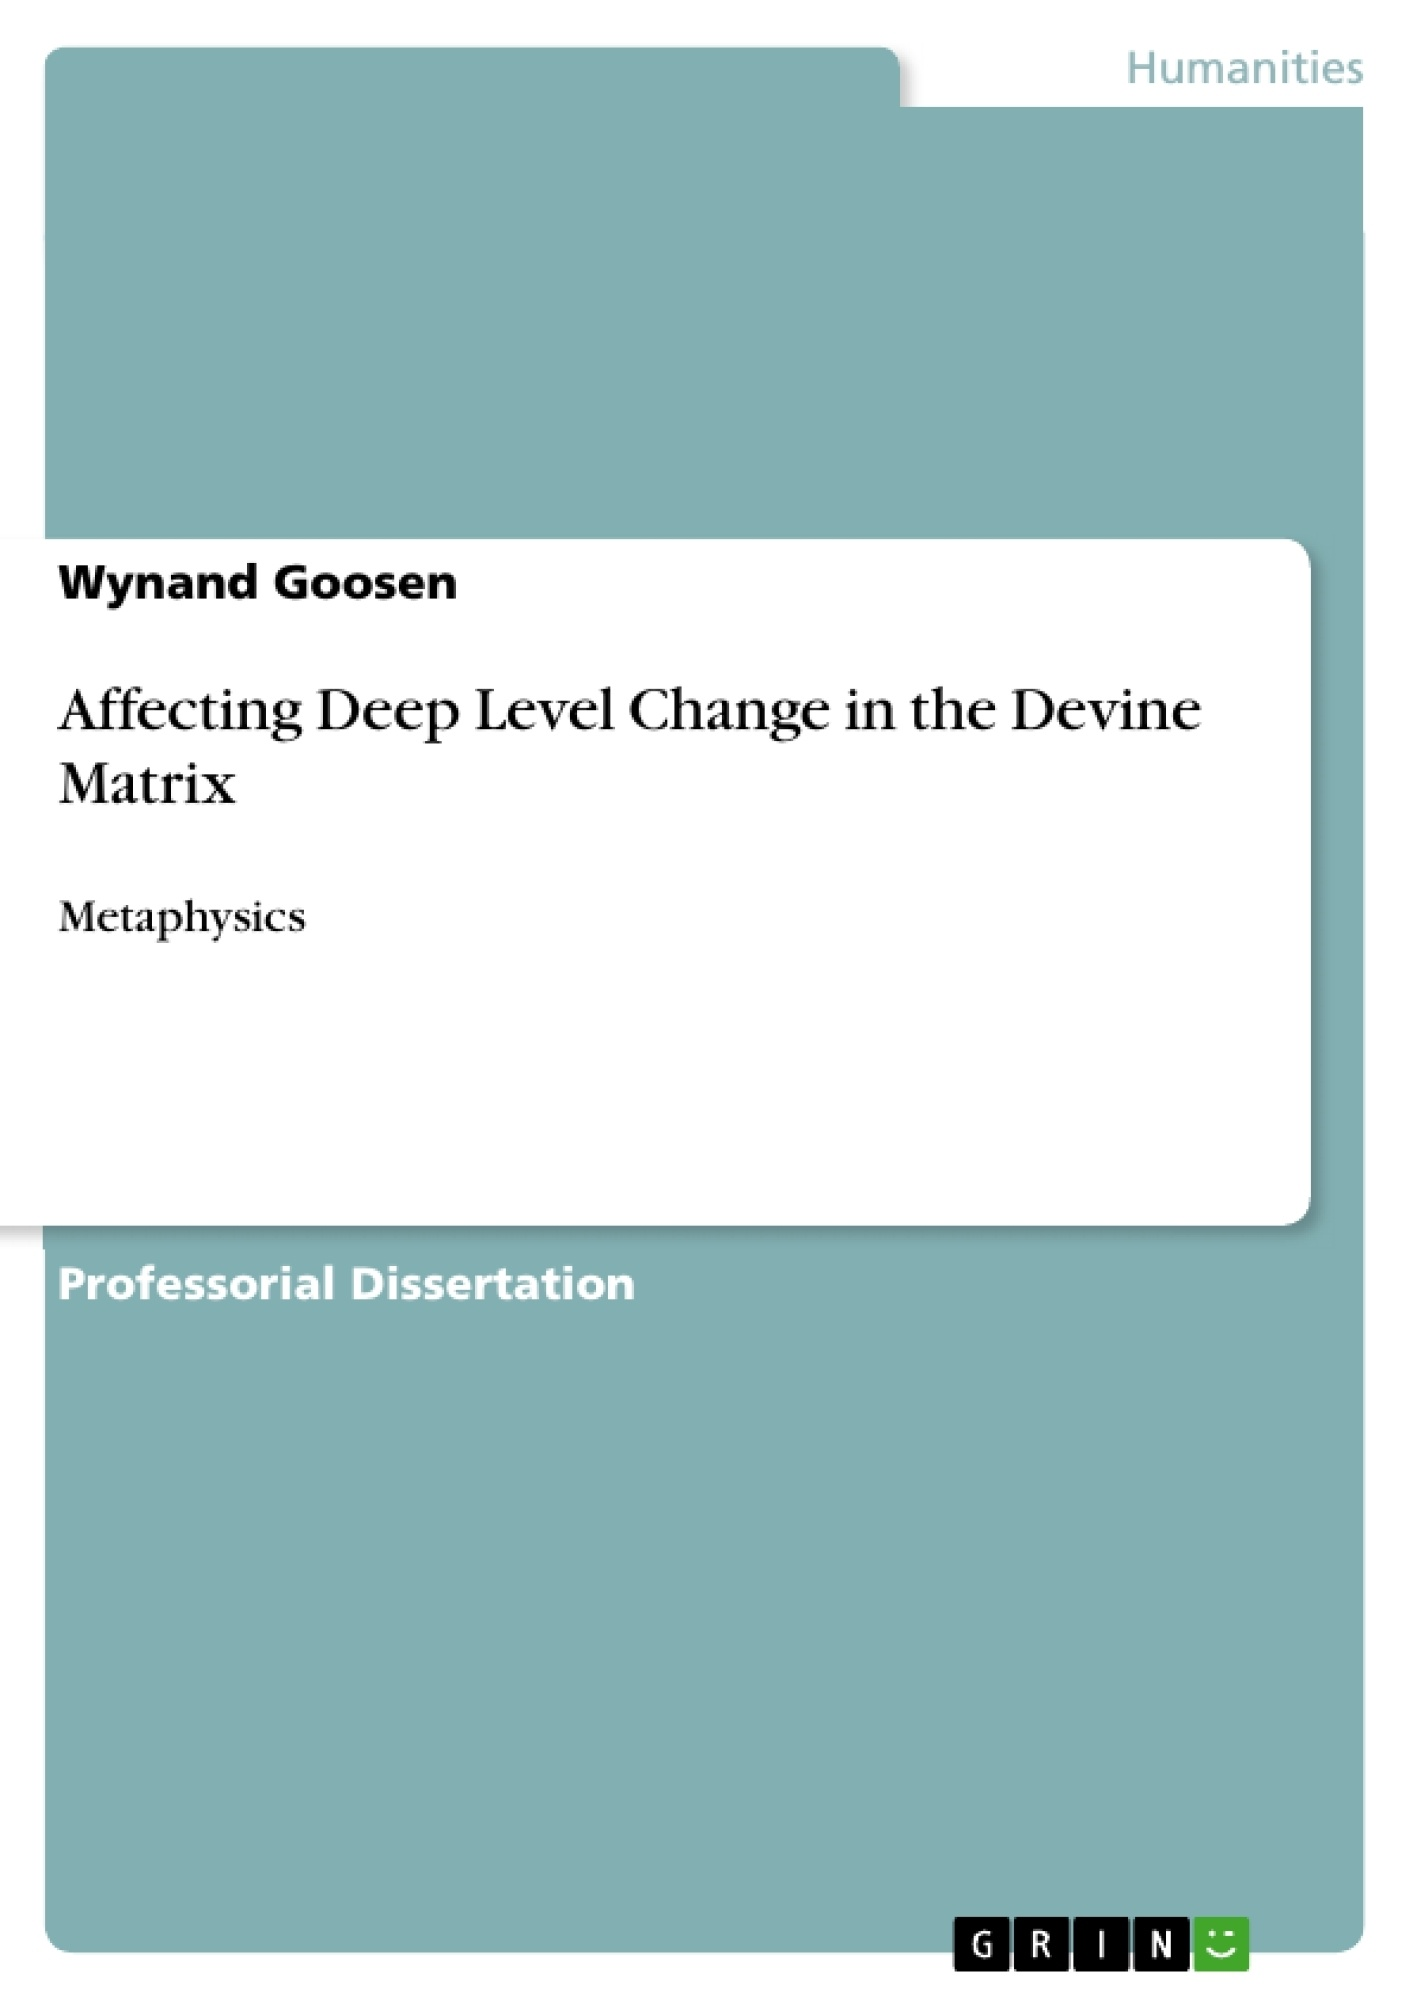 Title: Affecting Deep Level Change in the Devine Matrix